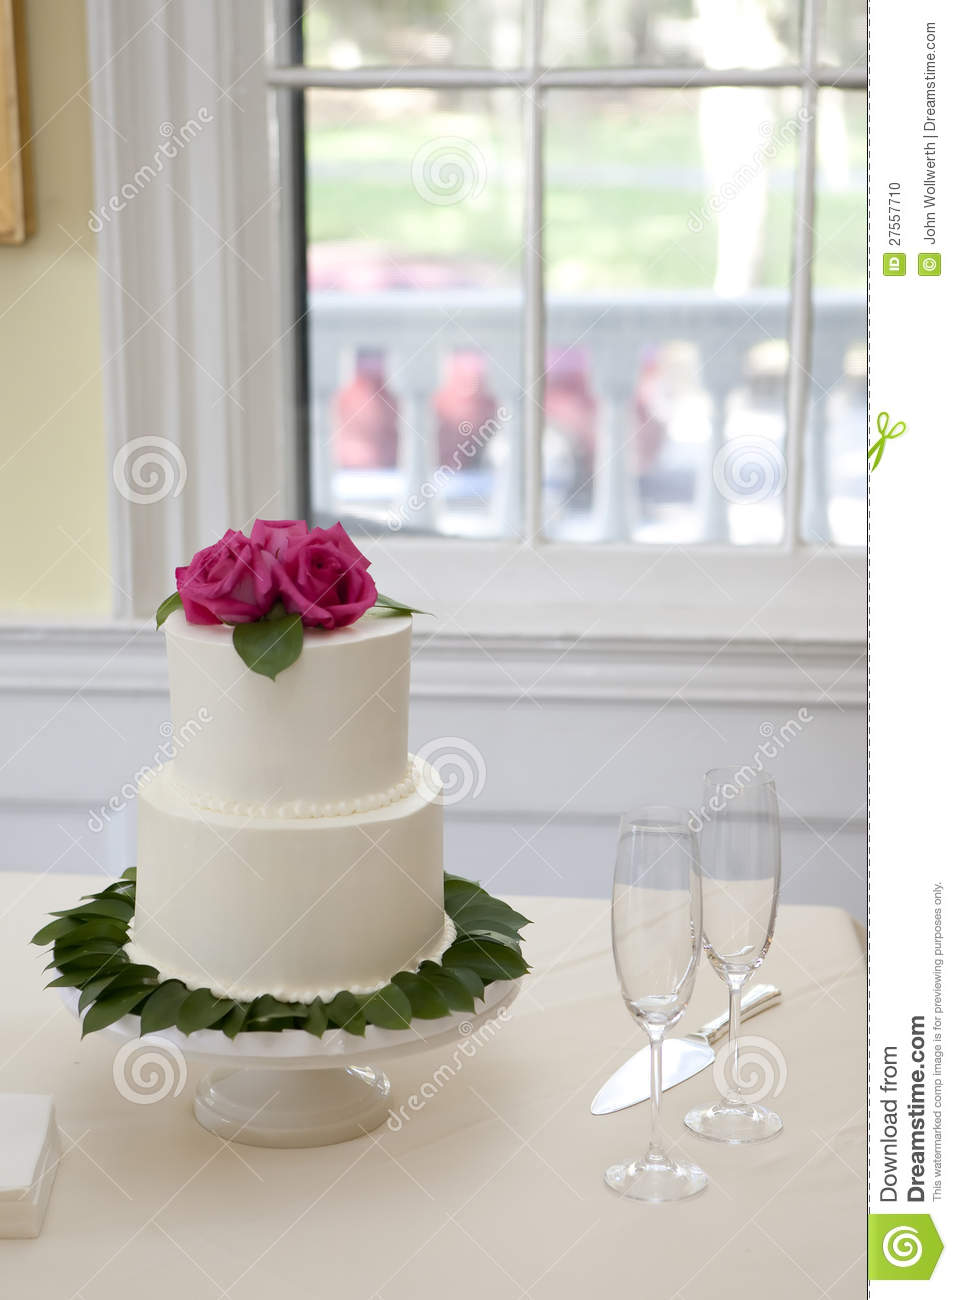 Small Two Tiered Wedding Cake Stock Photo Image Of Decorate